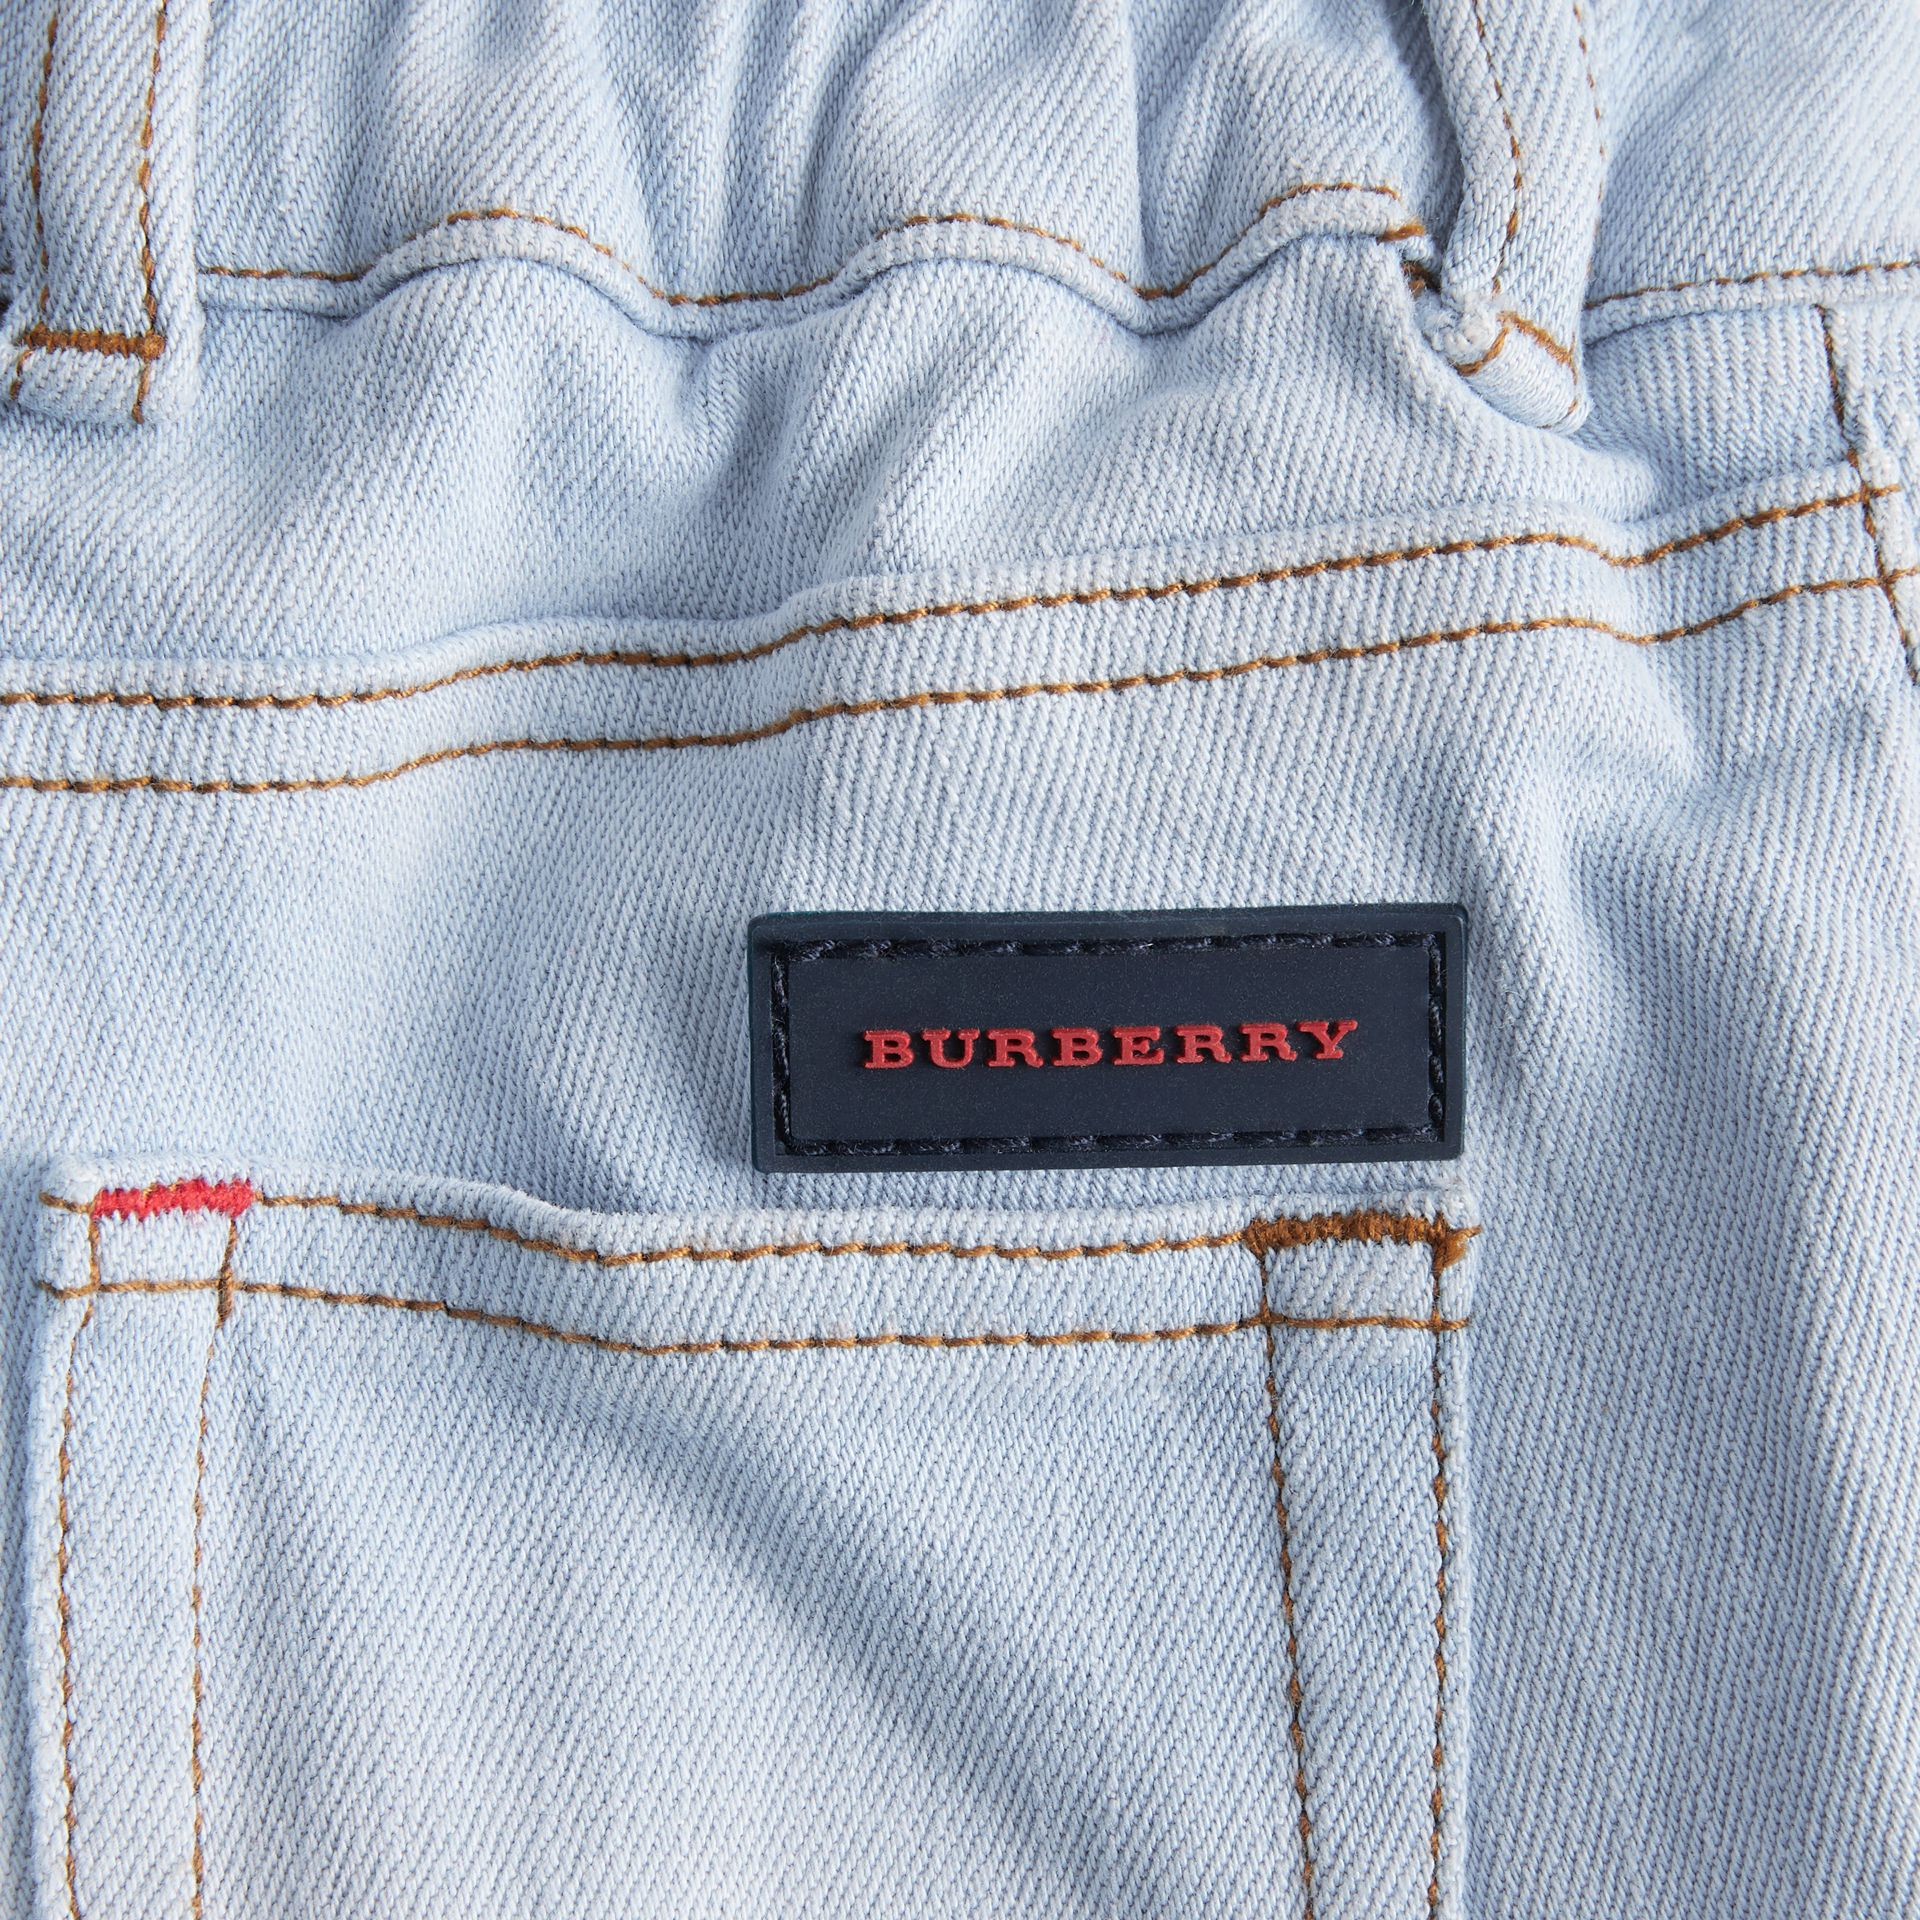 Relaxed Fit Stretch Denim Jeans in Light Blue - Children | Burberry - gallery image 1